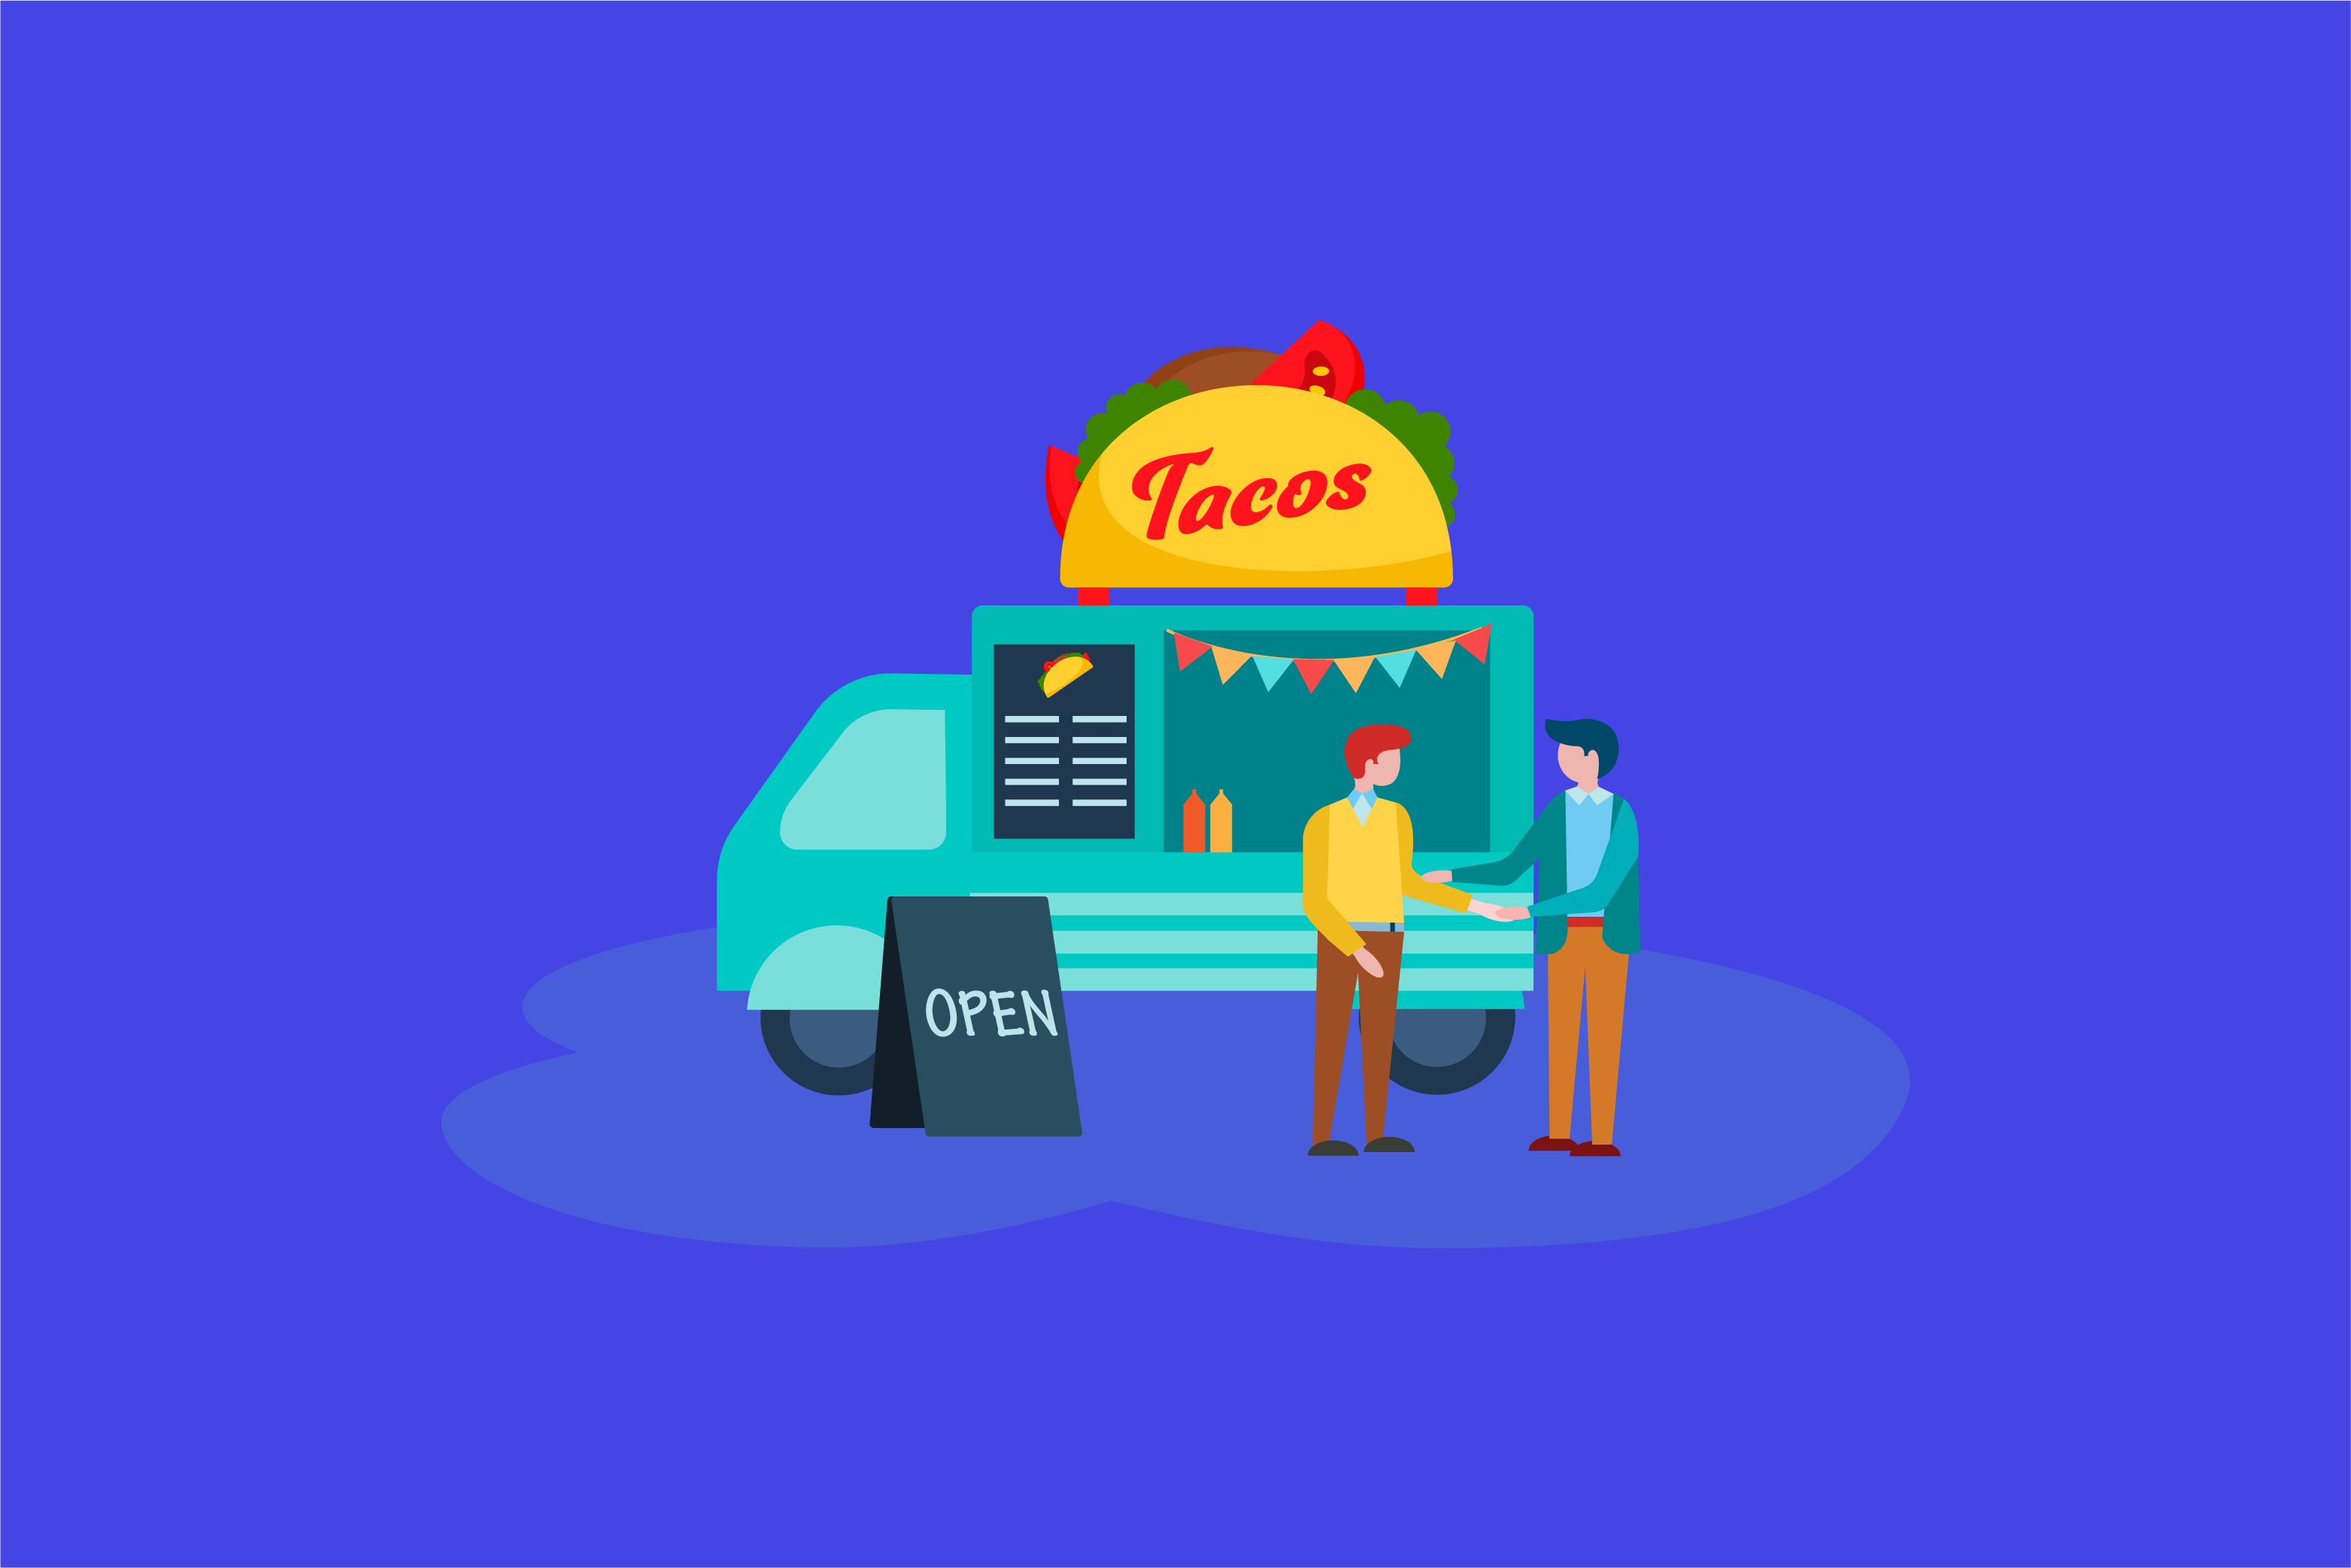 Investing Locally With a Self-Directed Account: How to Invest in a Taco Truck Small Business With Your Rocket Dollar IRA